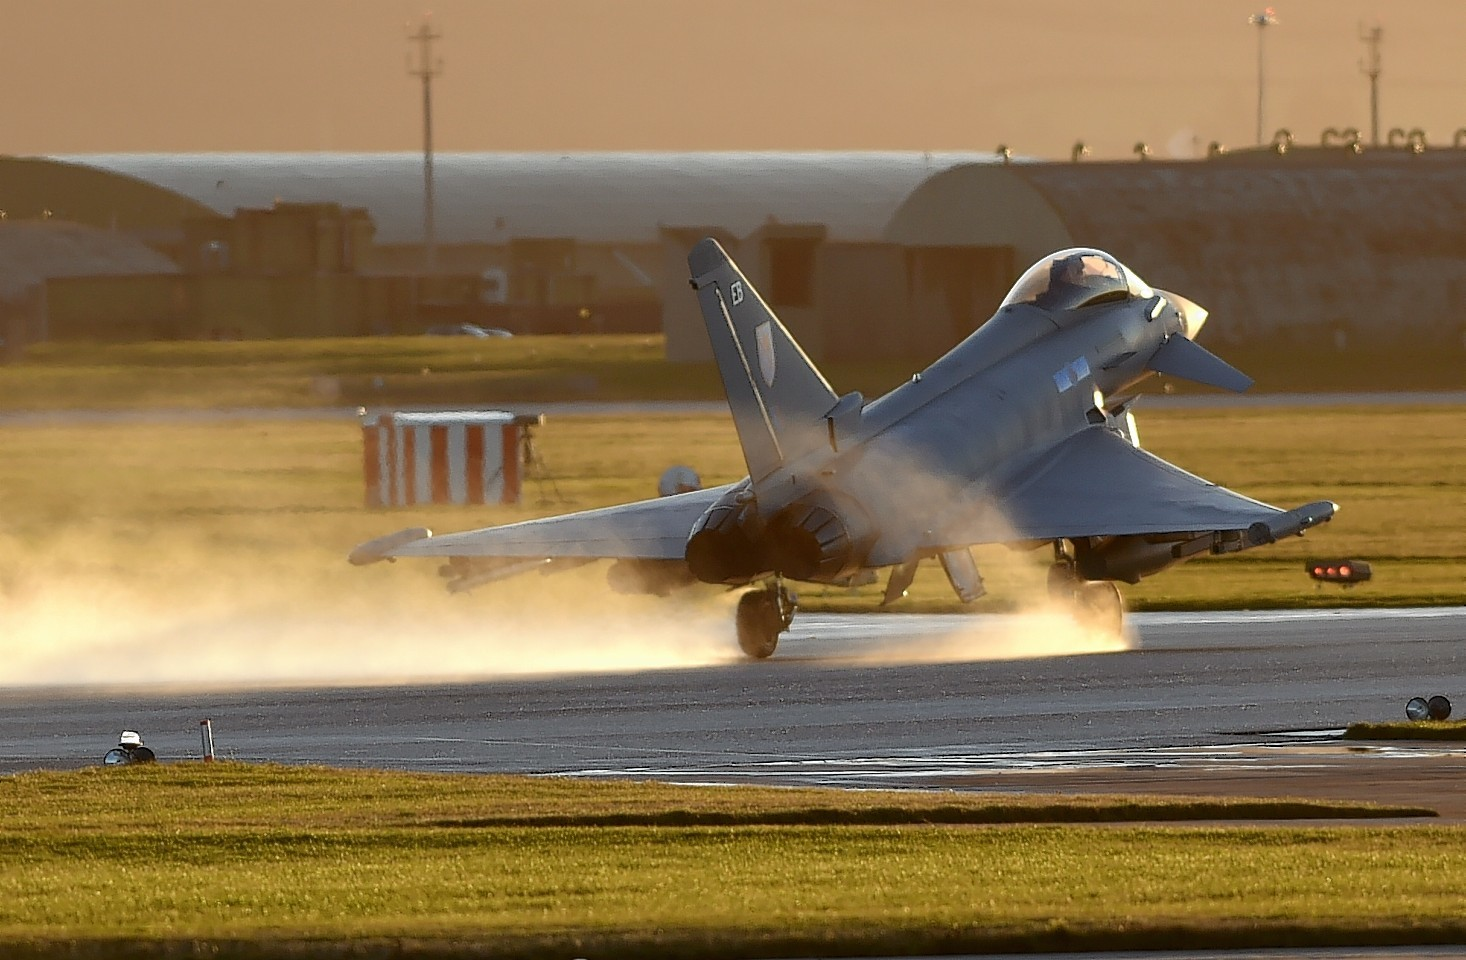 A Typhoon coming in to land at RAF Lossiemouth